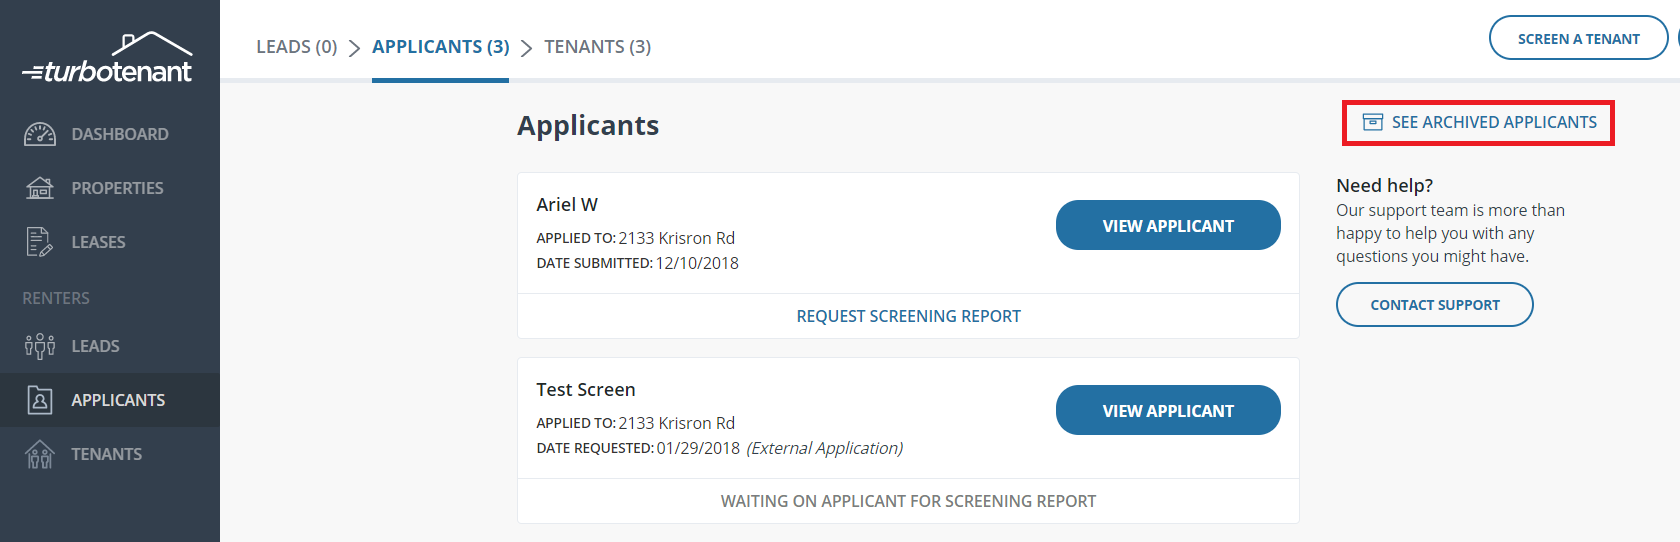 see_archived_applicants.png